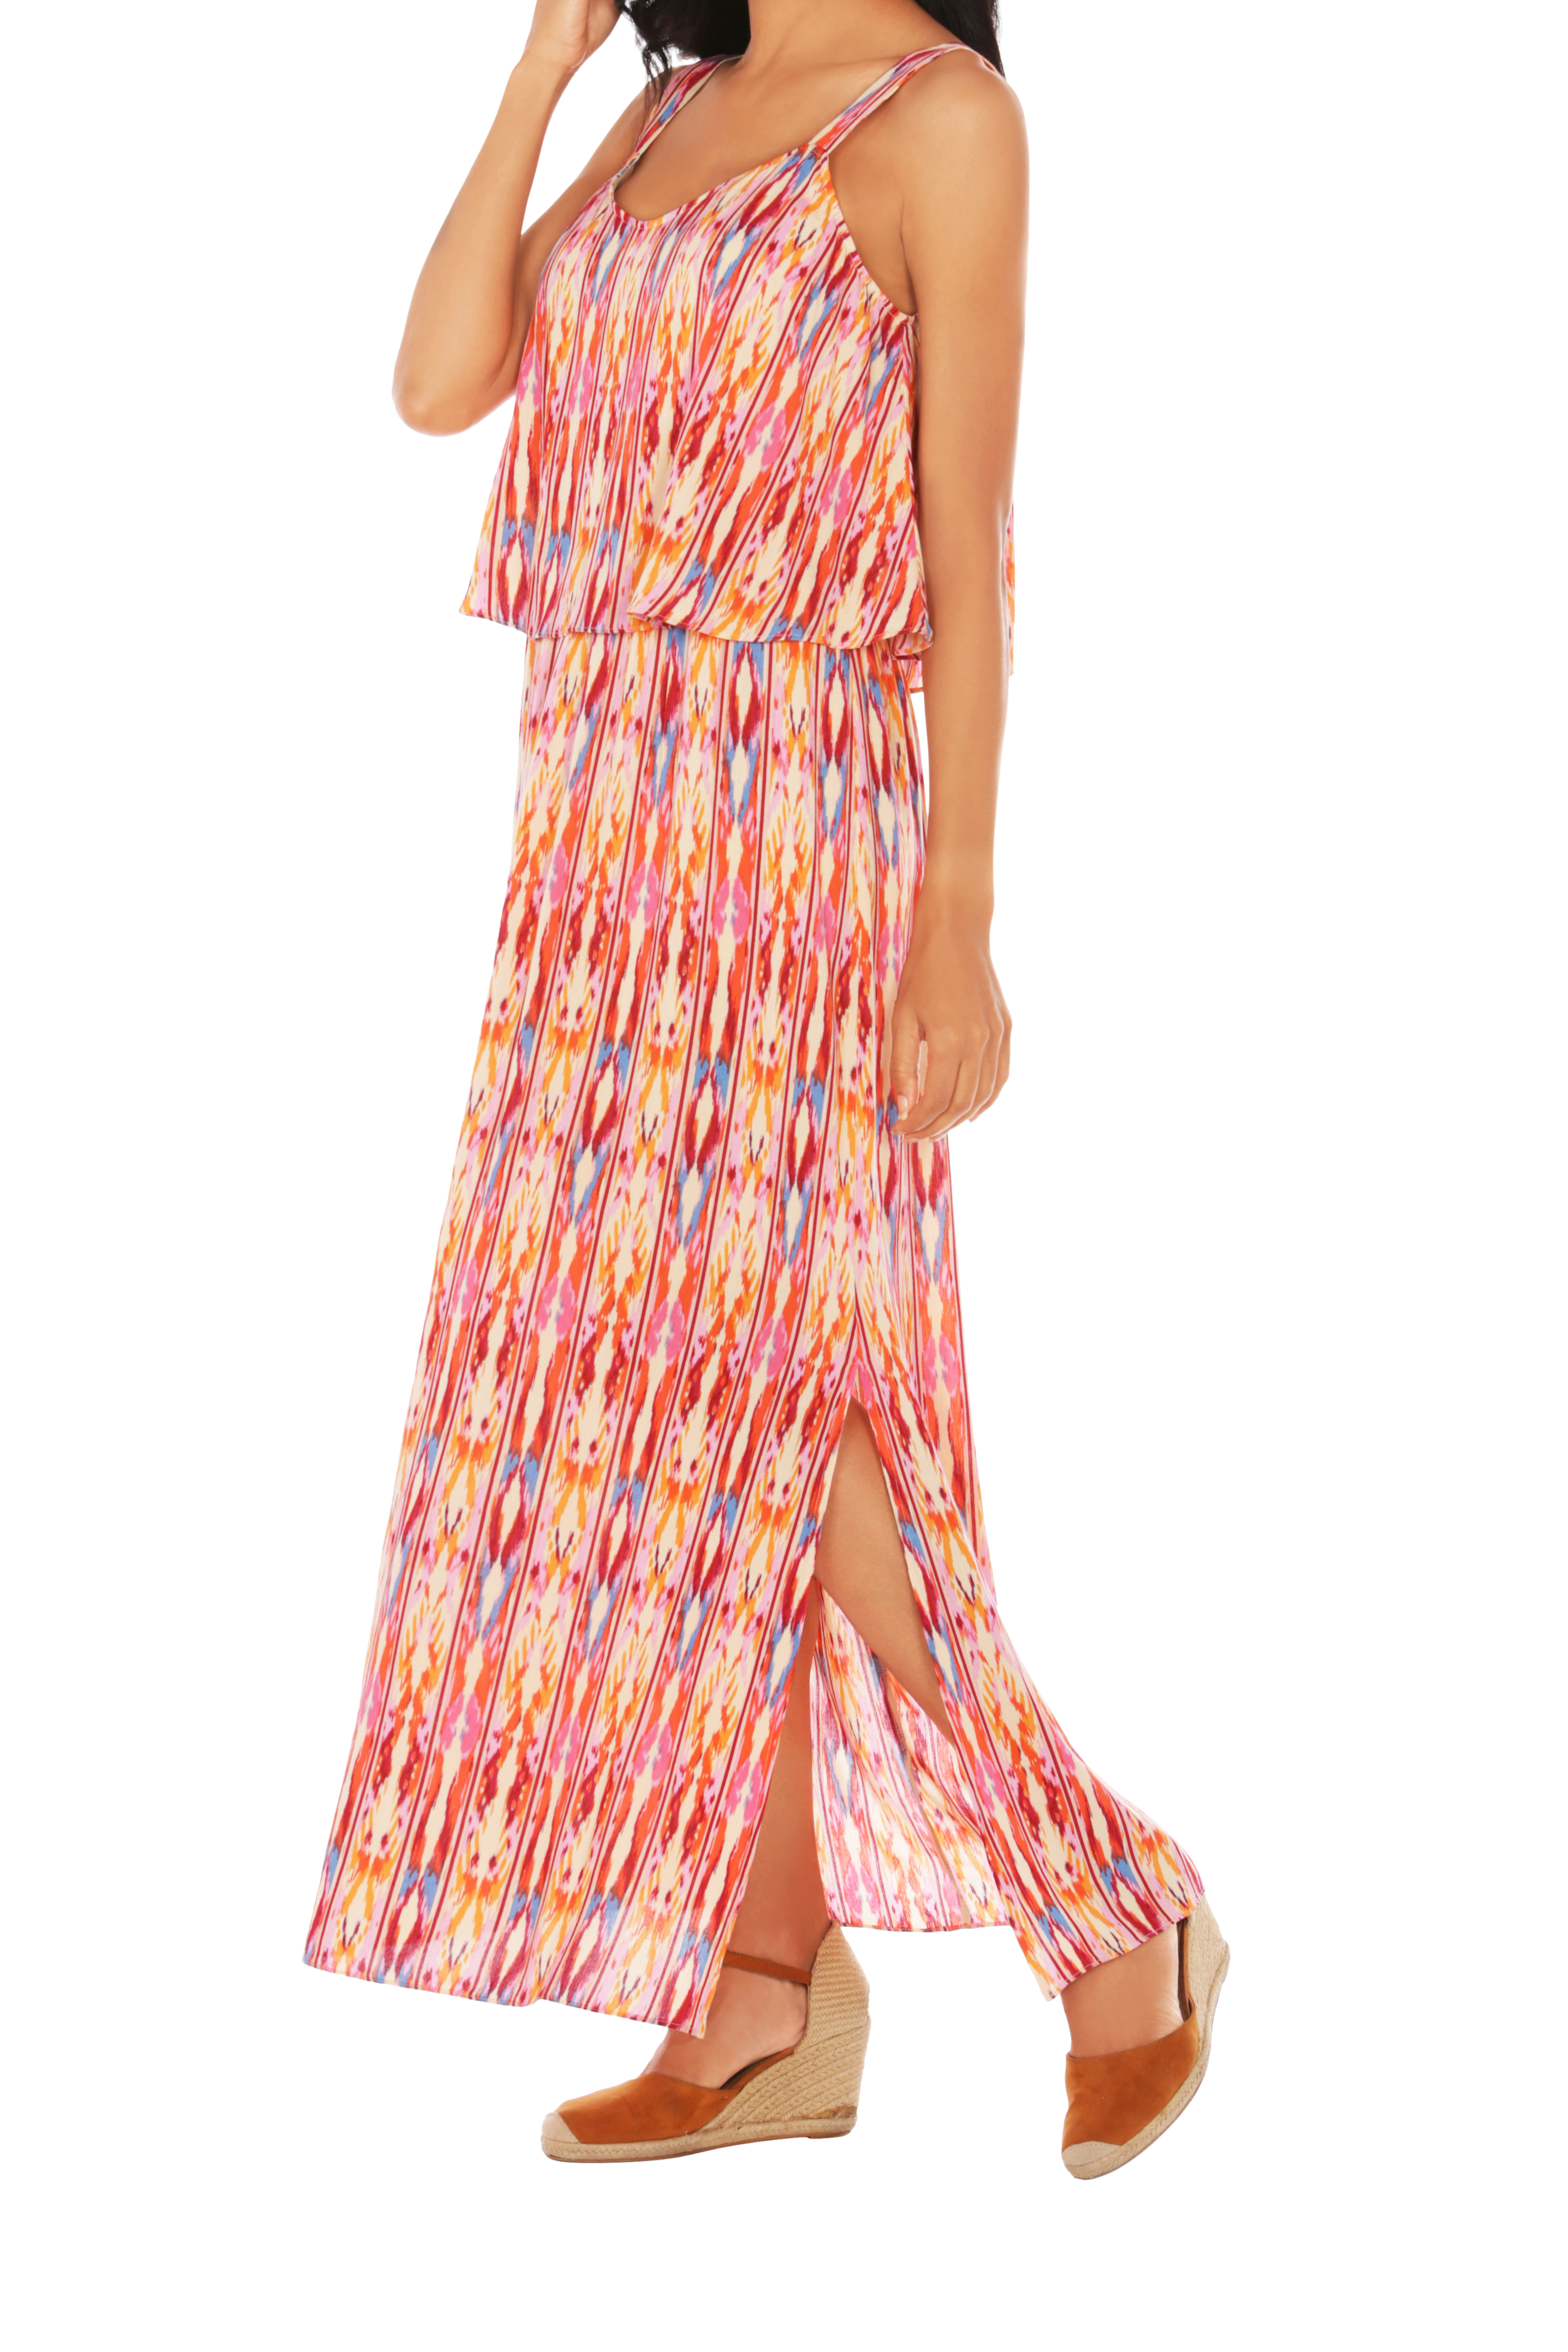 Caribbean Joe® Double Layer Maxi Dress - Bittersweet - Front